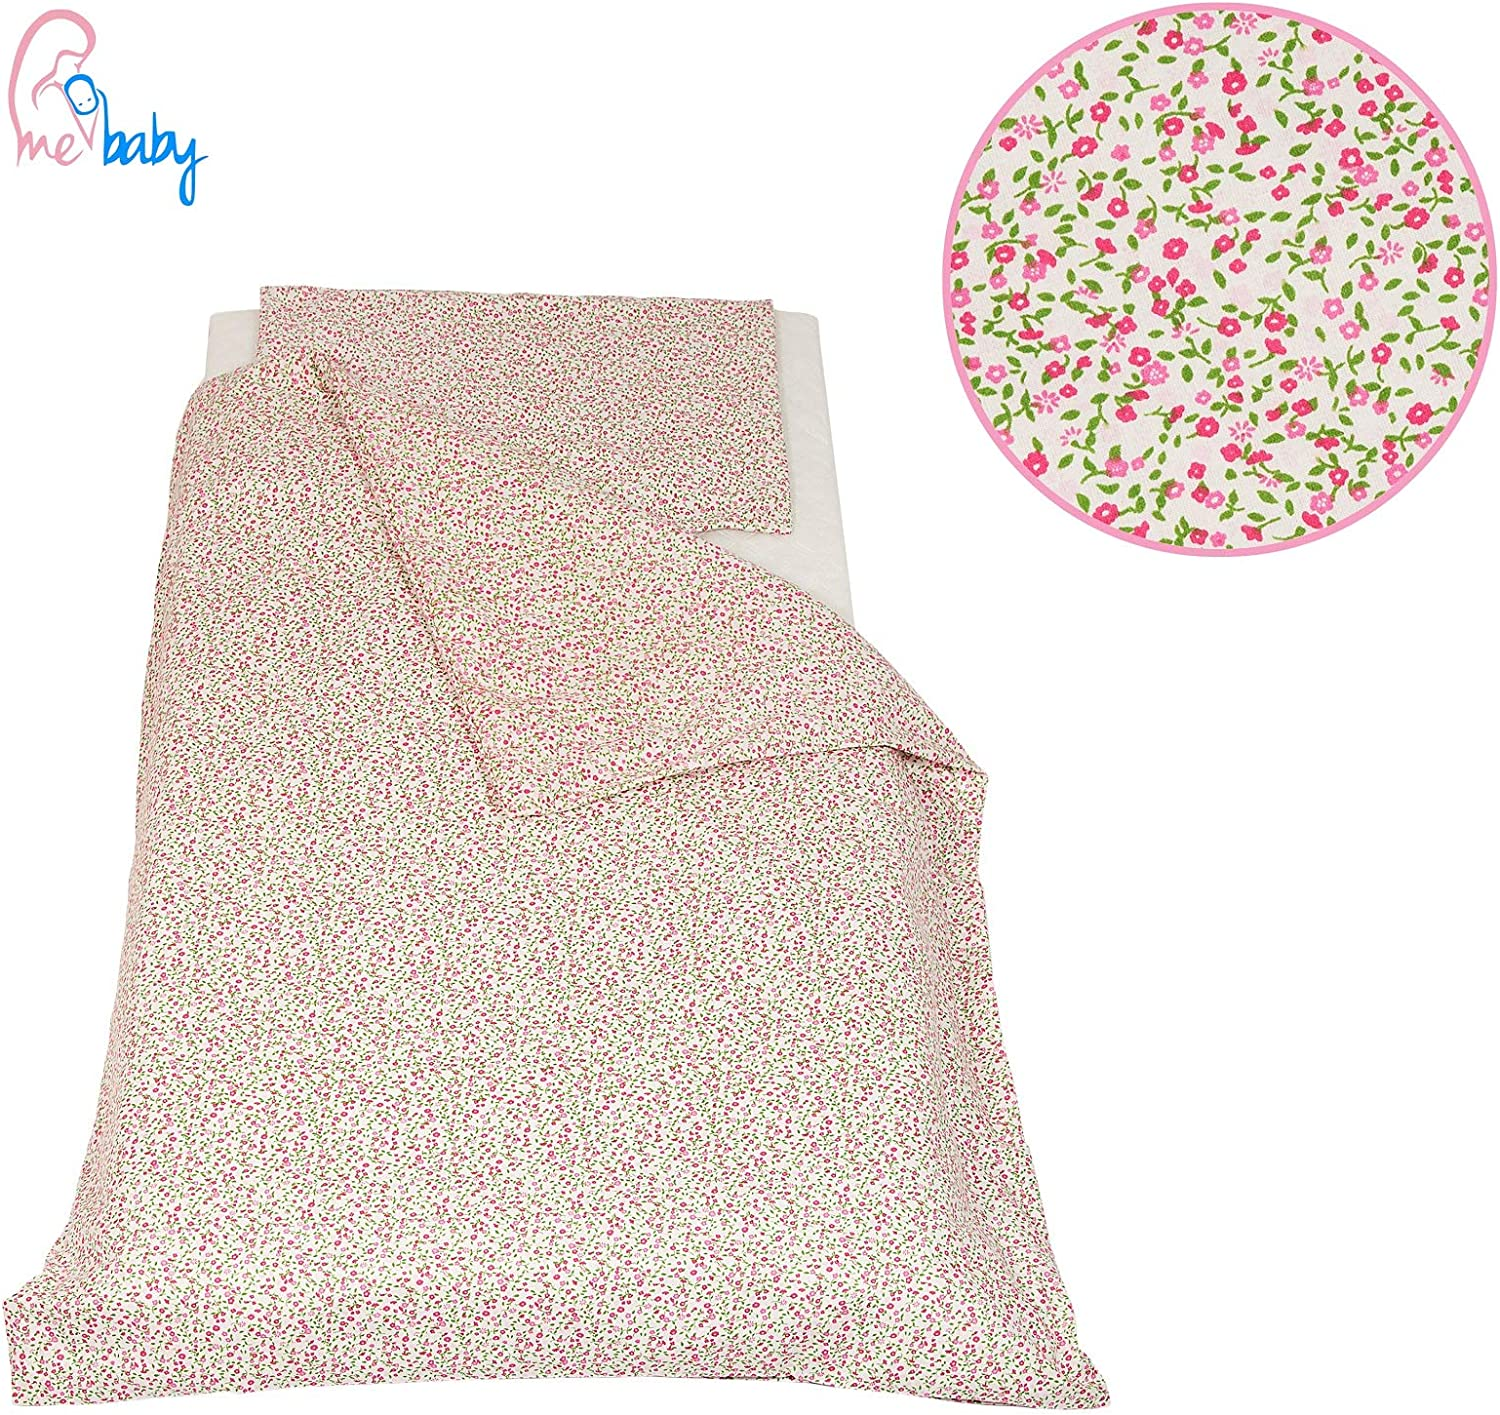 Cot Duvet Cover and Pillowcase Set 100 x 135 cm 100/% COTTON pink /& grey stars